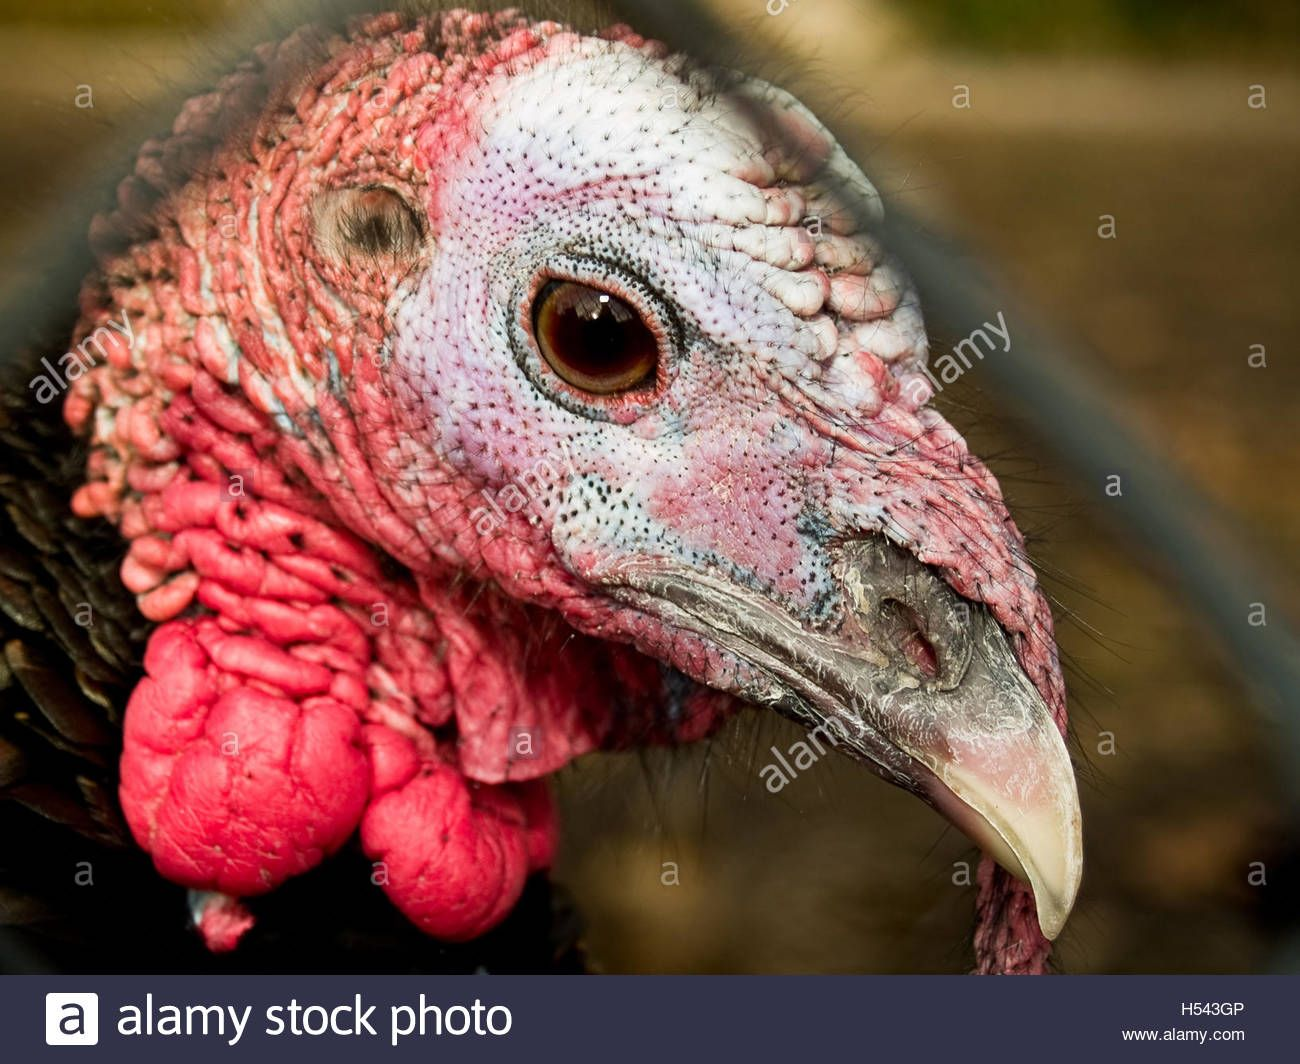 If anybody is looking for me...I'm not here. Shh! Download this stock image: Turkey Close up - H543GP from Alamy's library of millions of high resolution stock photos, illustrations and vectors.